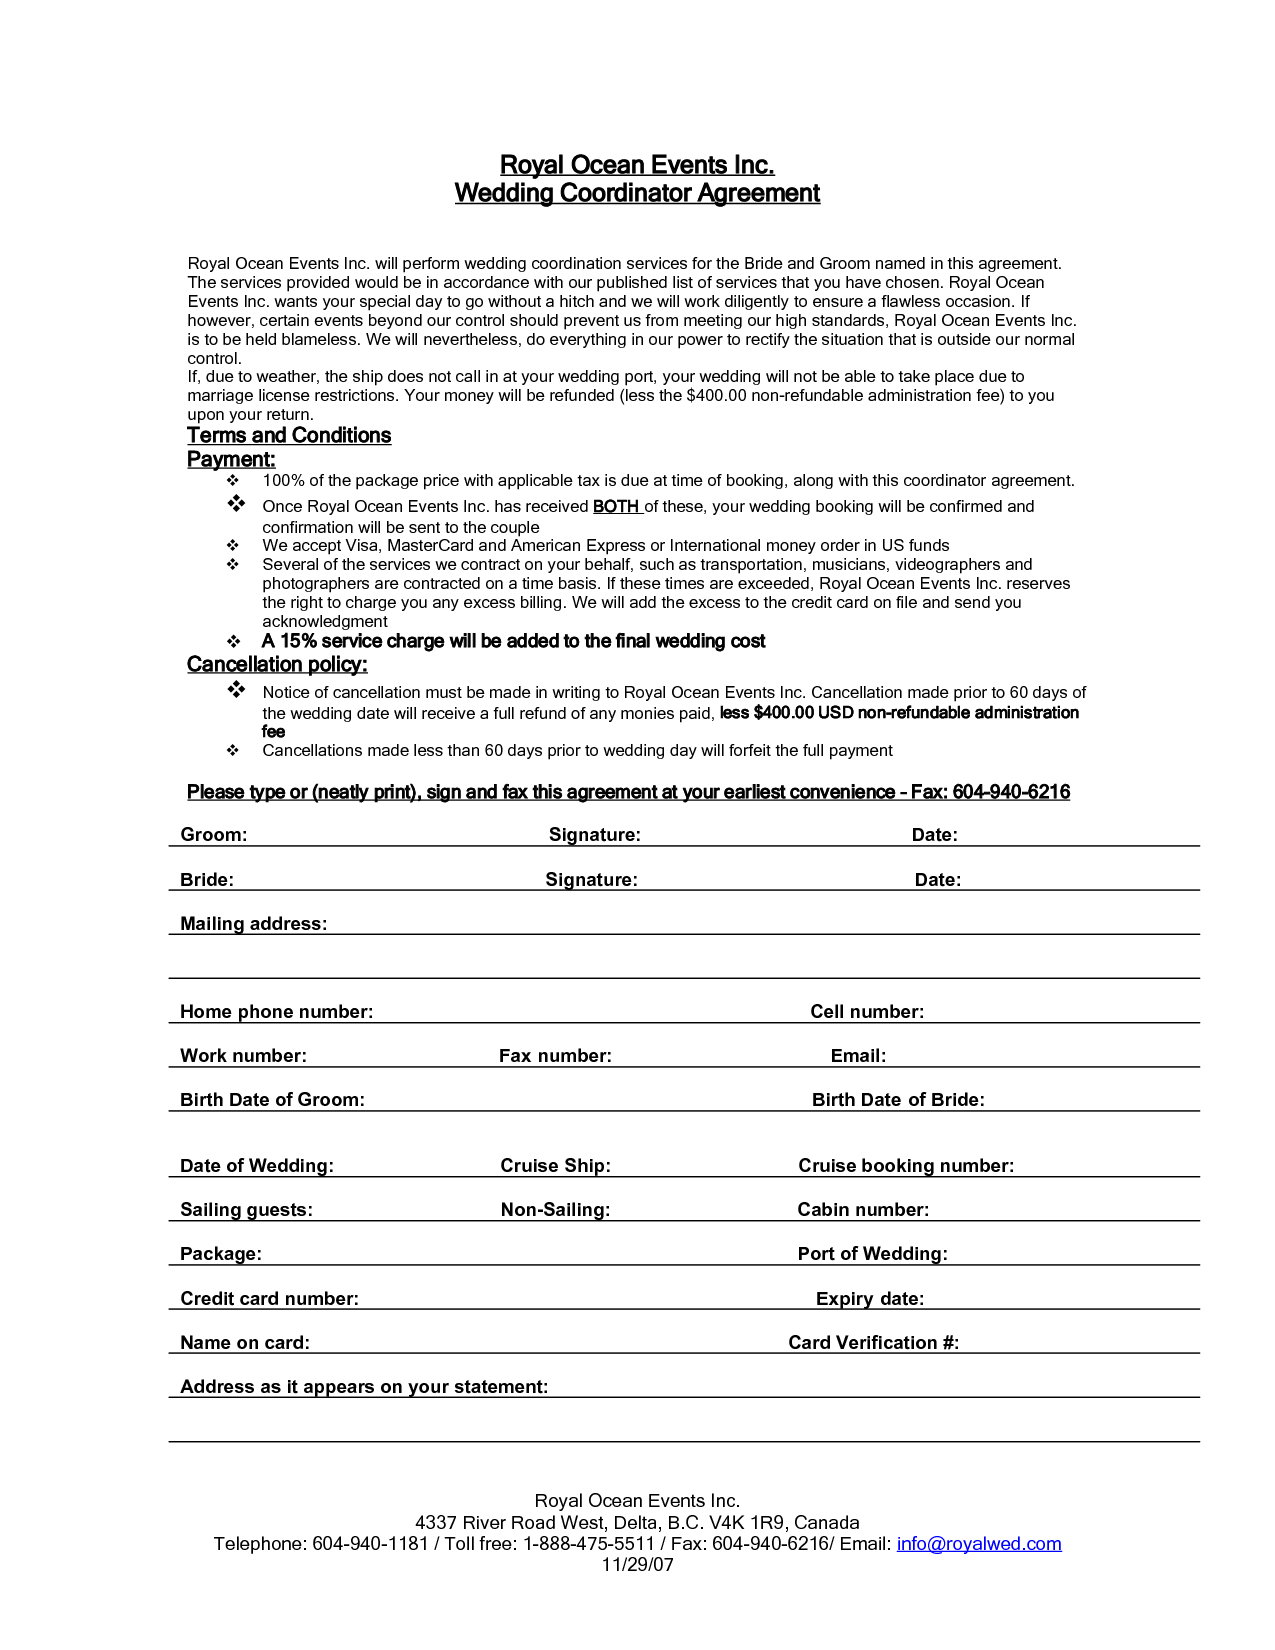 Wedding Planner Contract Agreement Life hacks – Event Coordinator Contract Sample